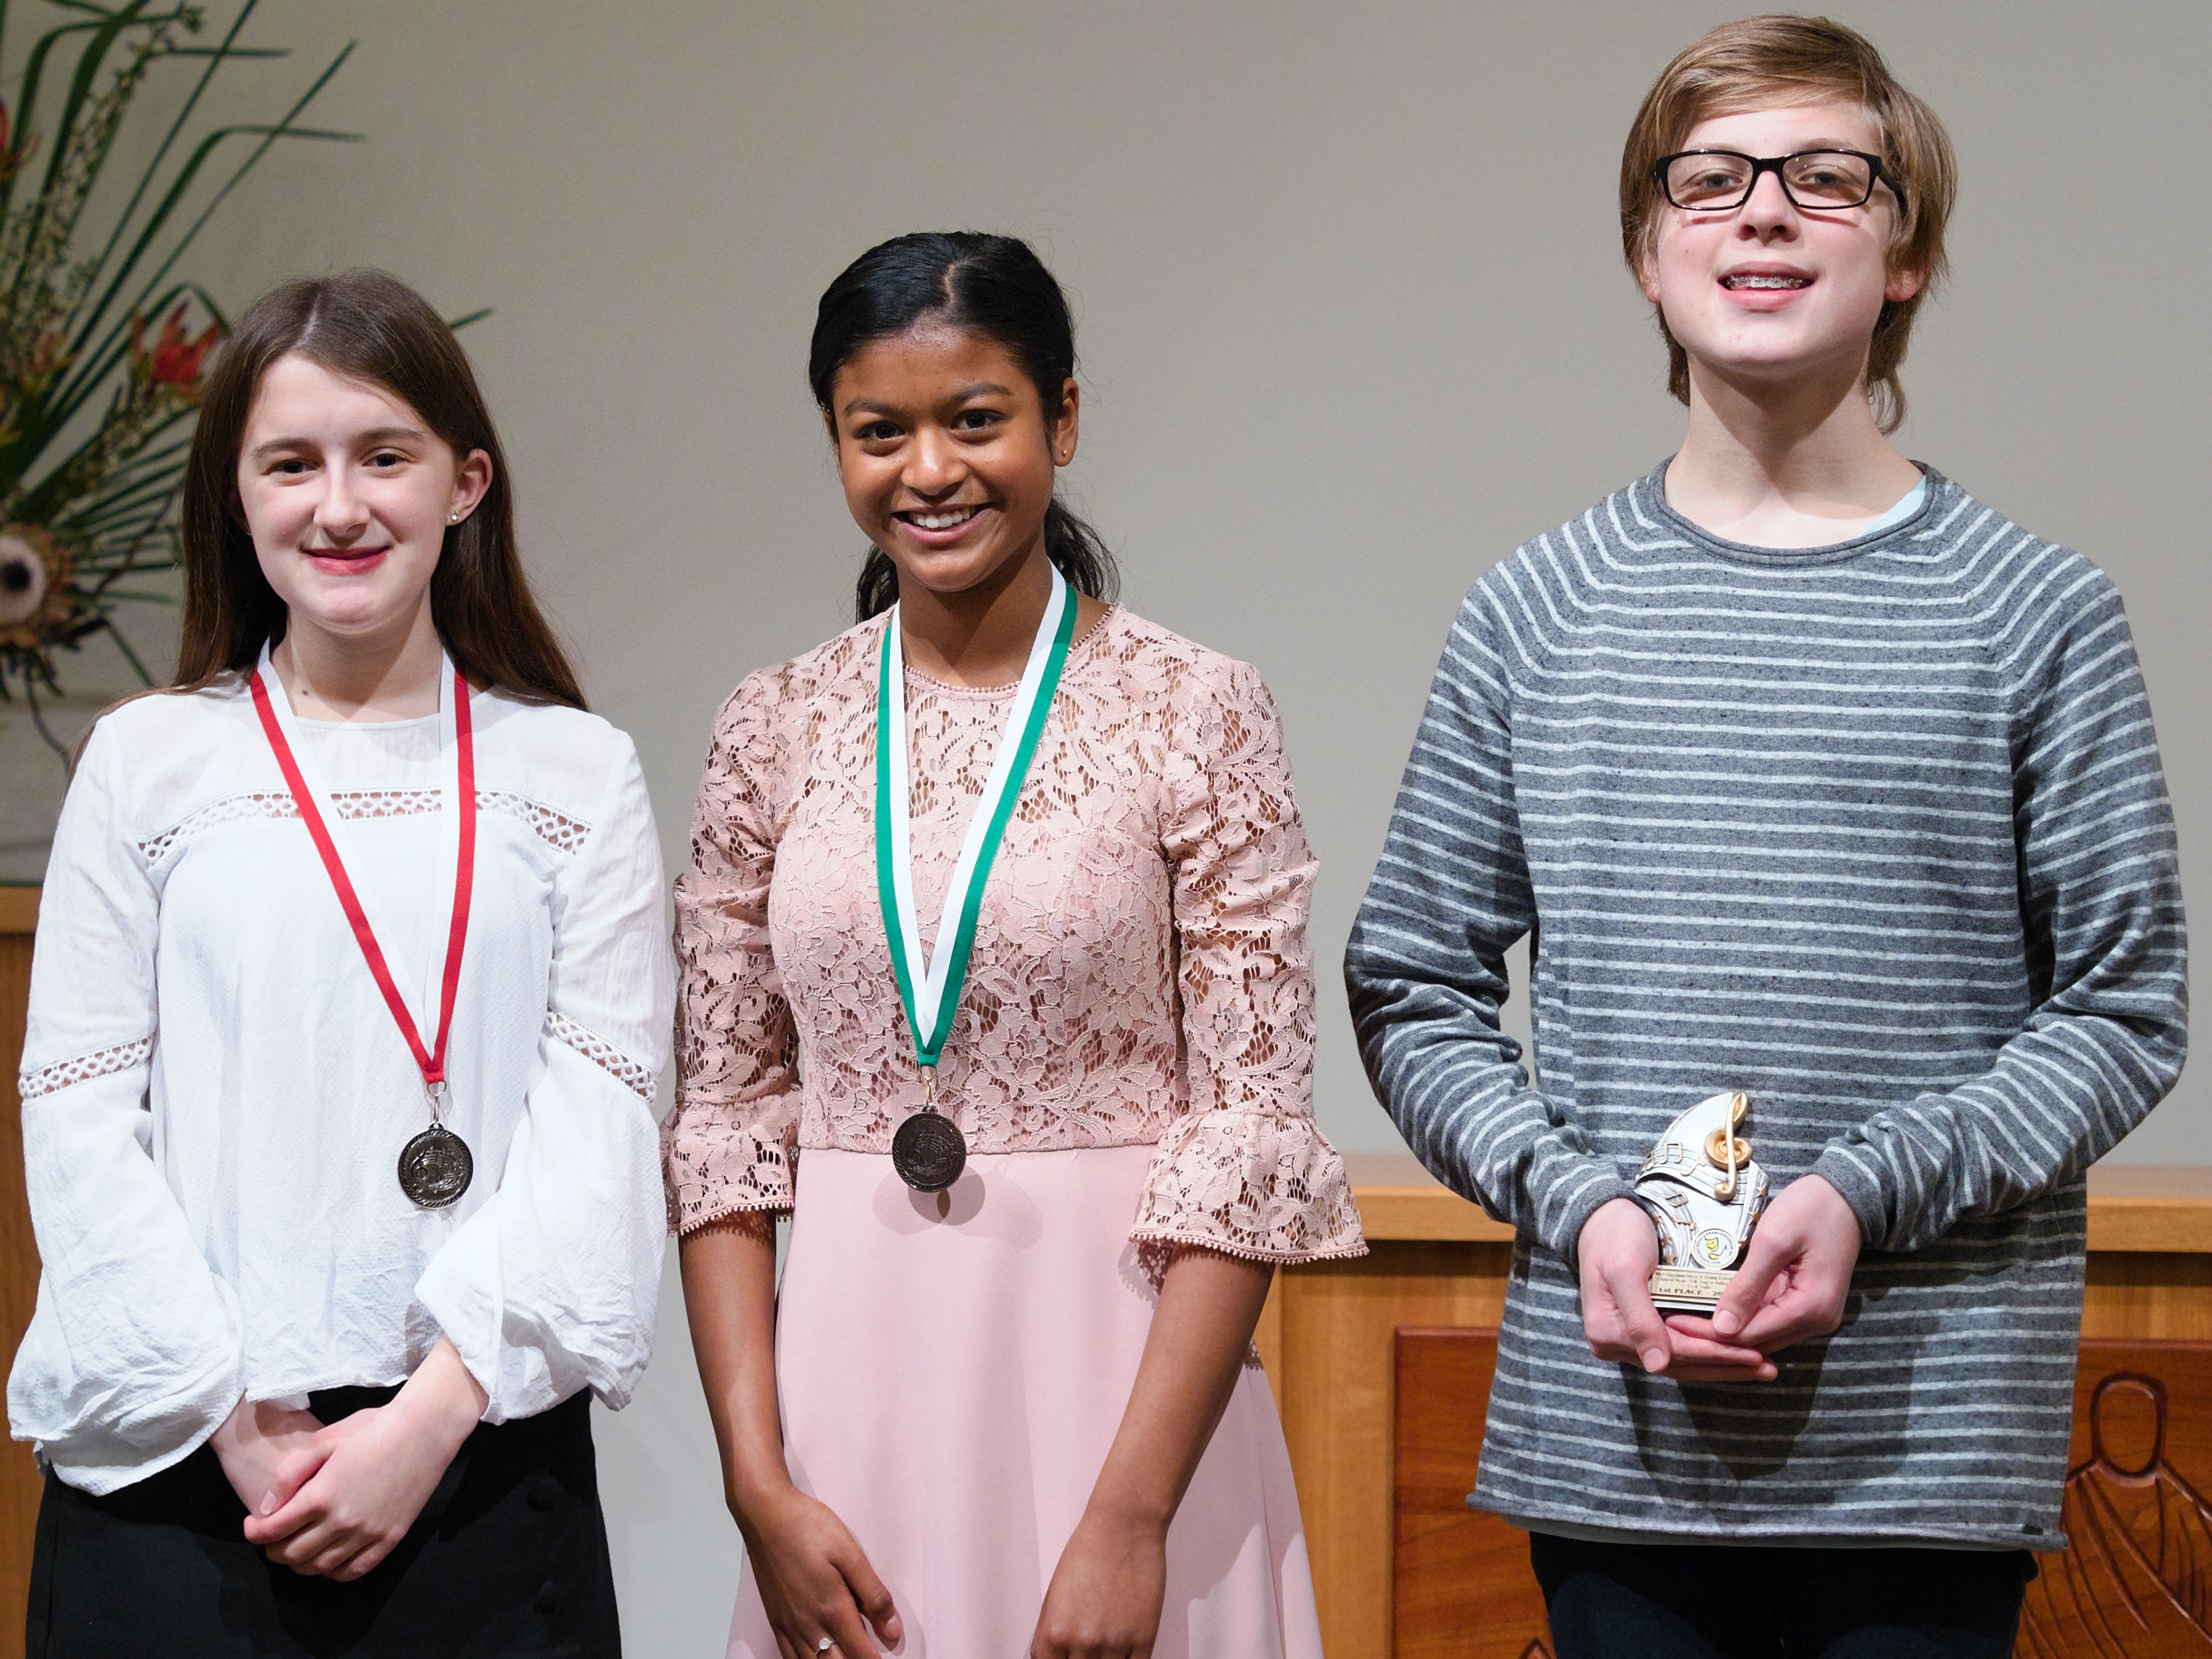 WGE Classical Vocal S708 1st Toby Wilksch, 2nd Holly Baker, 3rd Sheneli Phillipsz